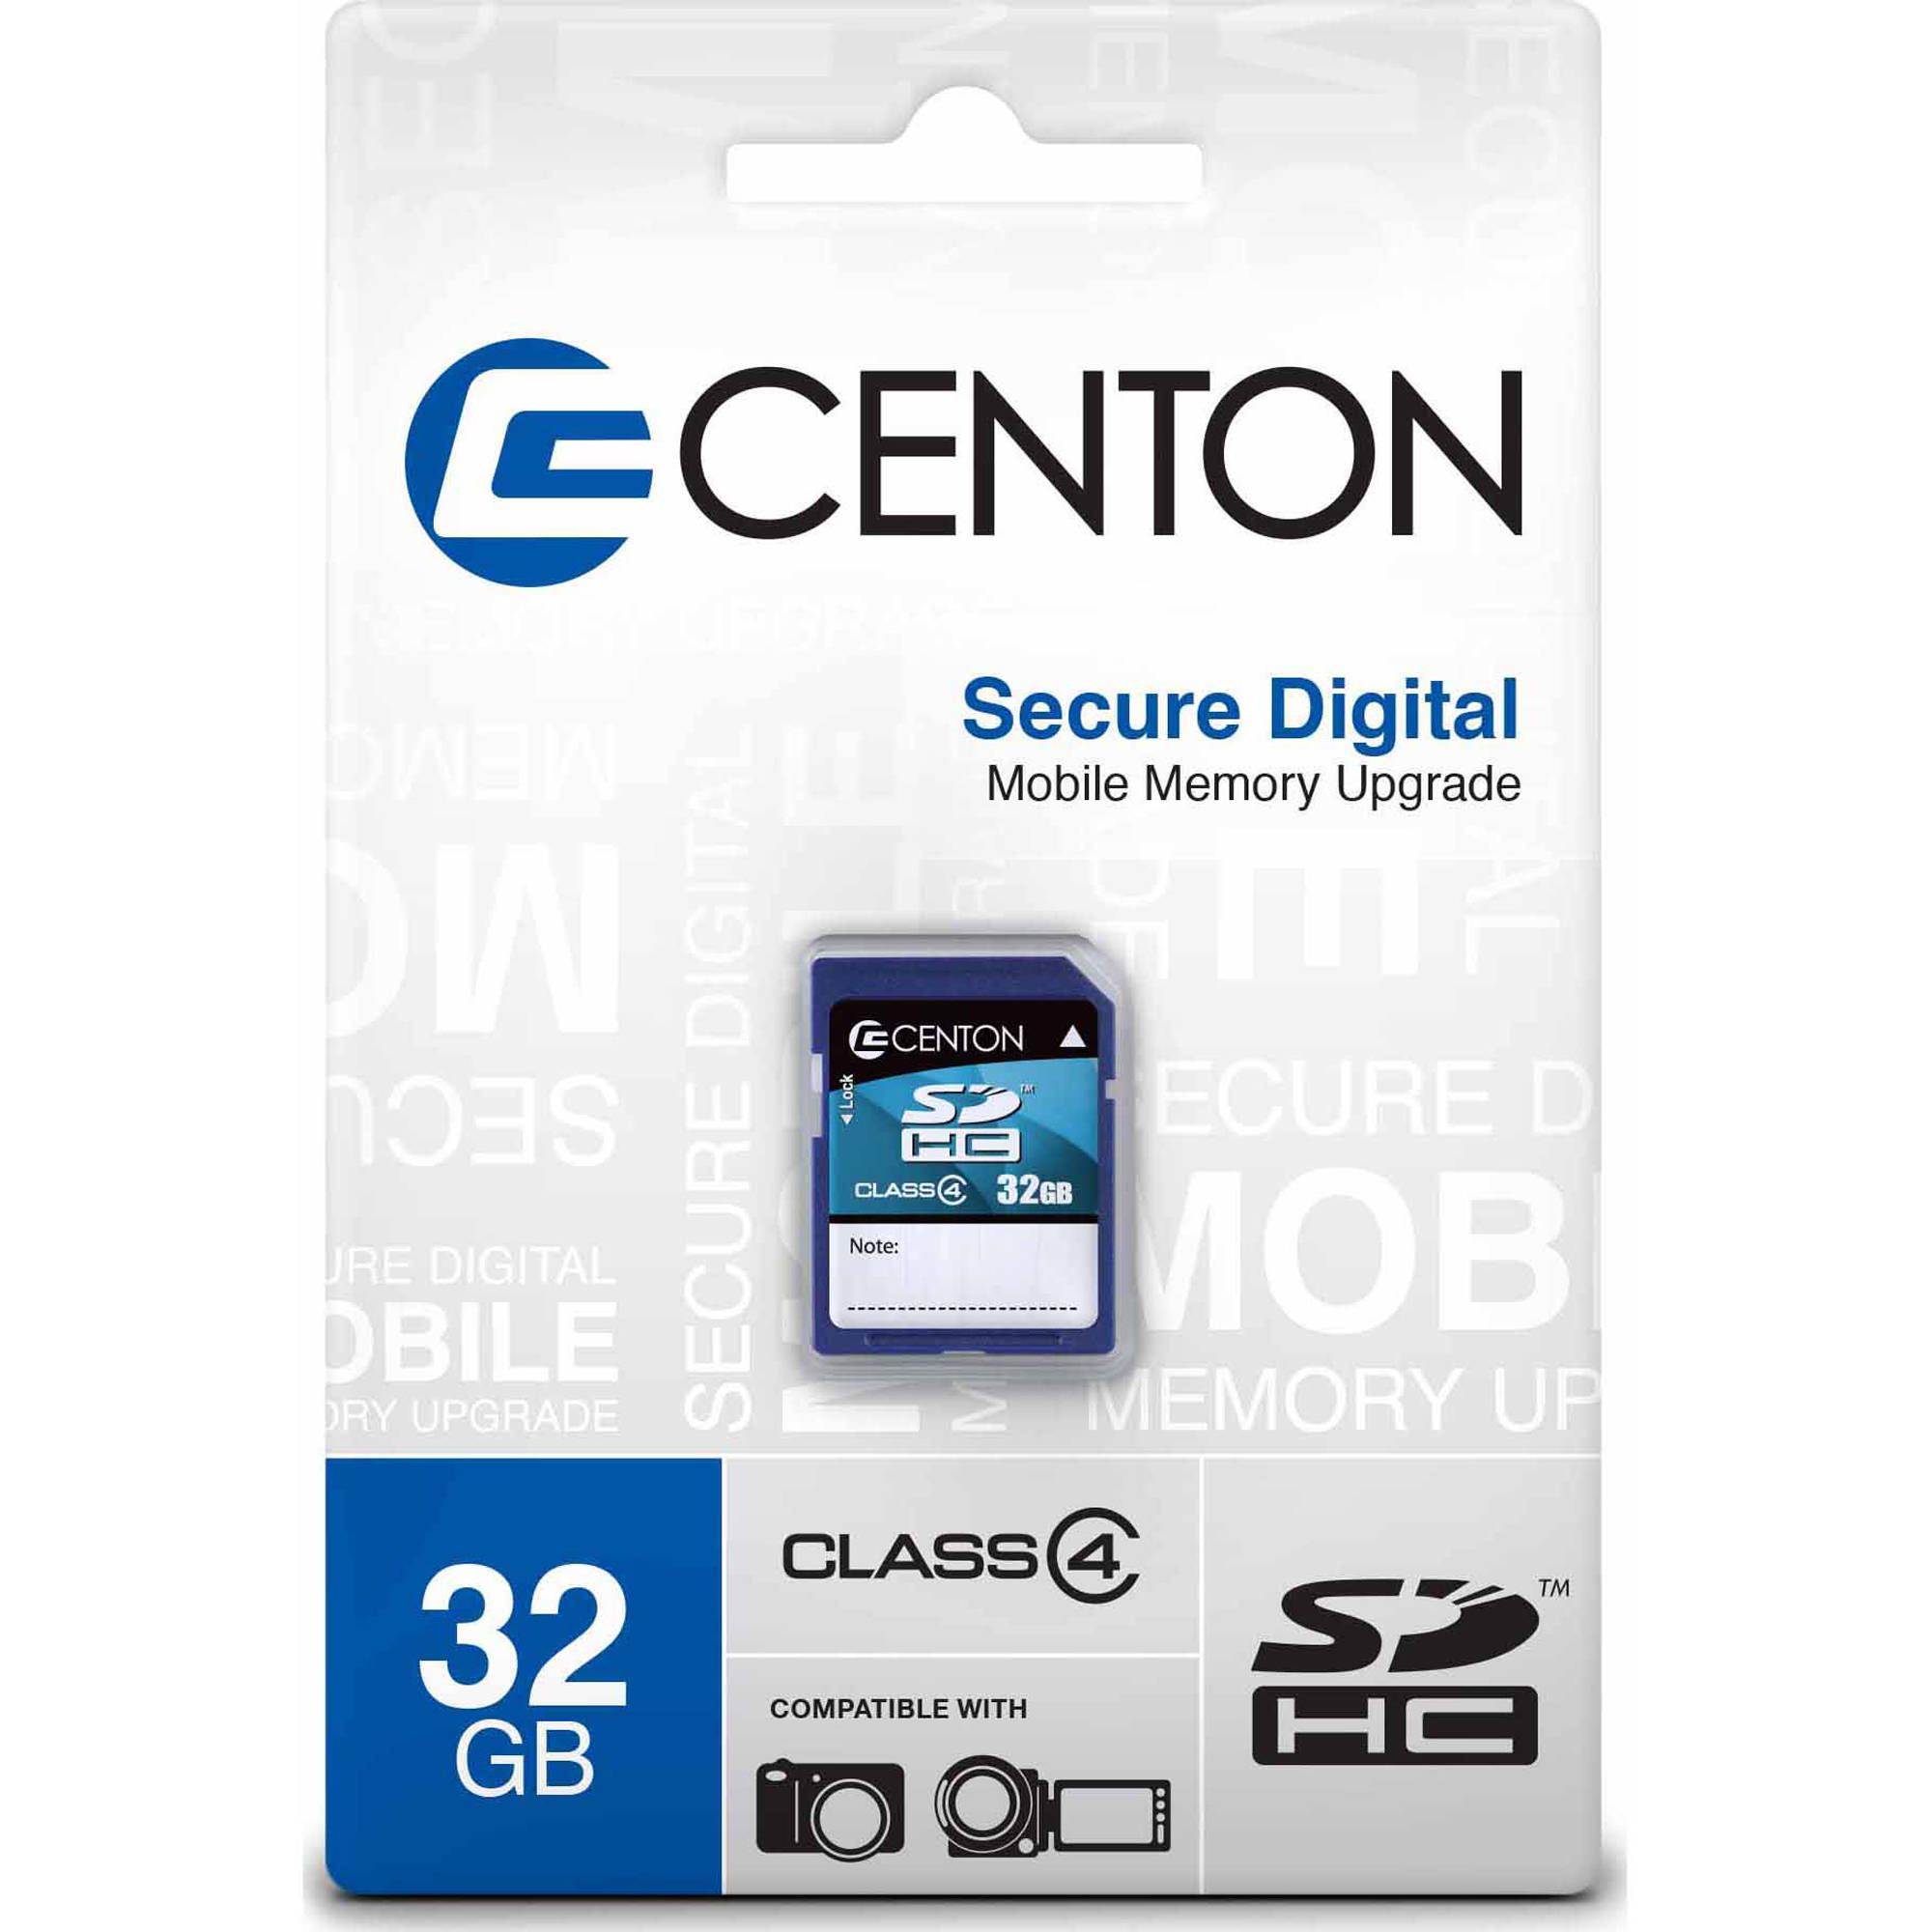 Centon MPO Essential 32GB Class 4 SDHC Memory Card